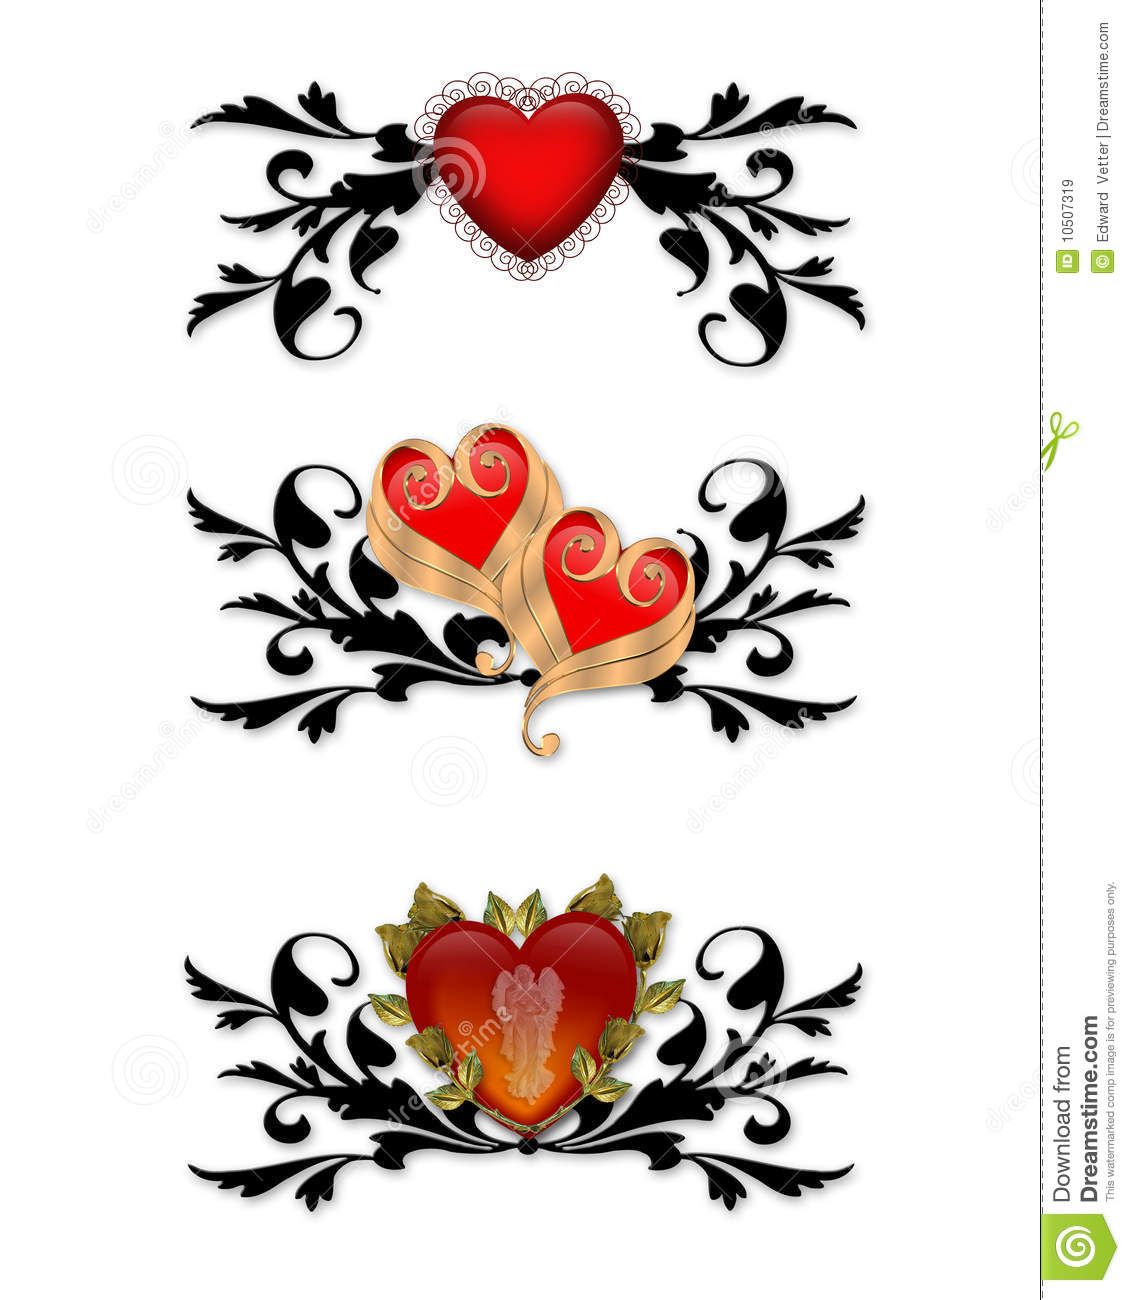 Red Heart Tribal Design Elements Royalty Free Stock Images ...